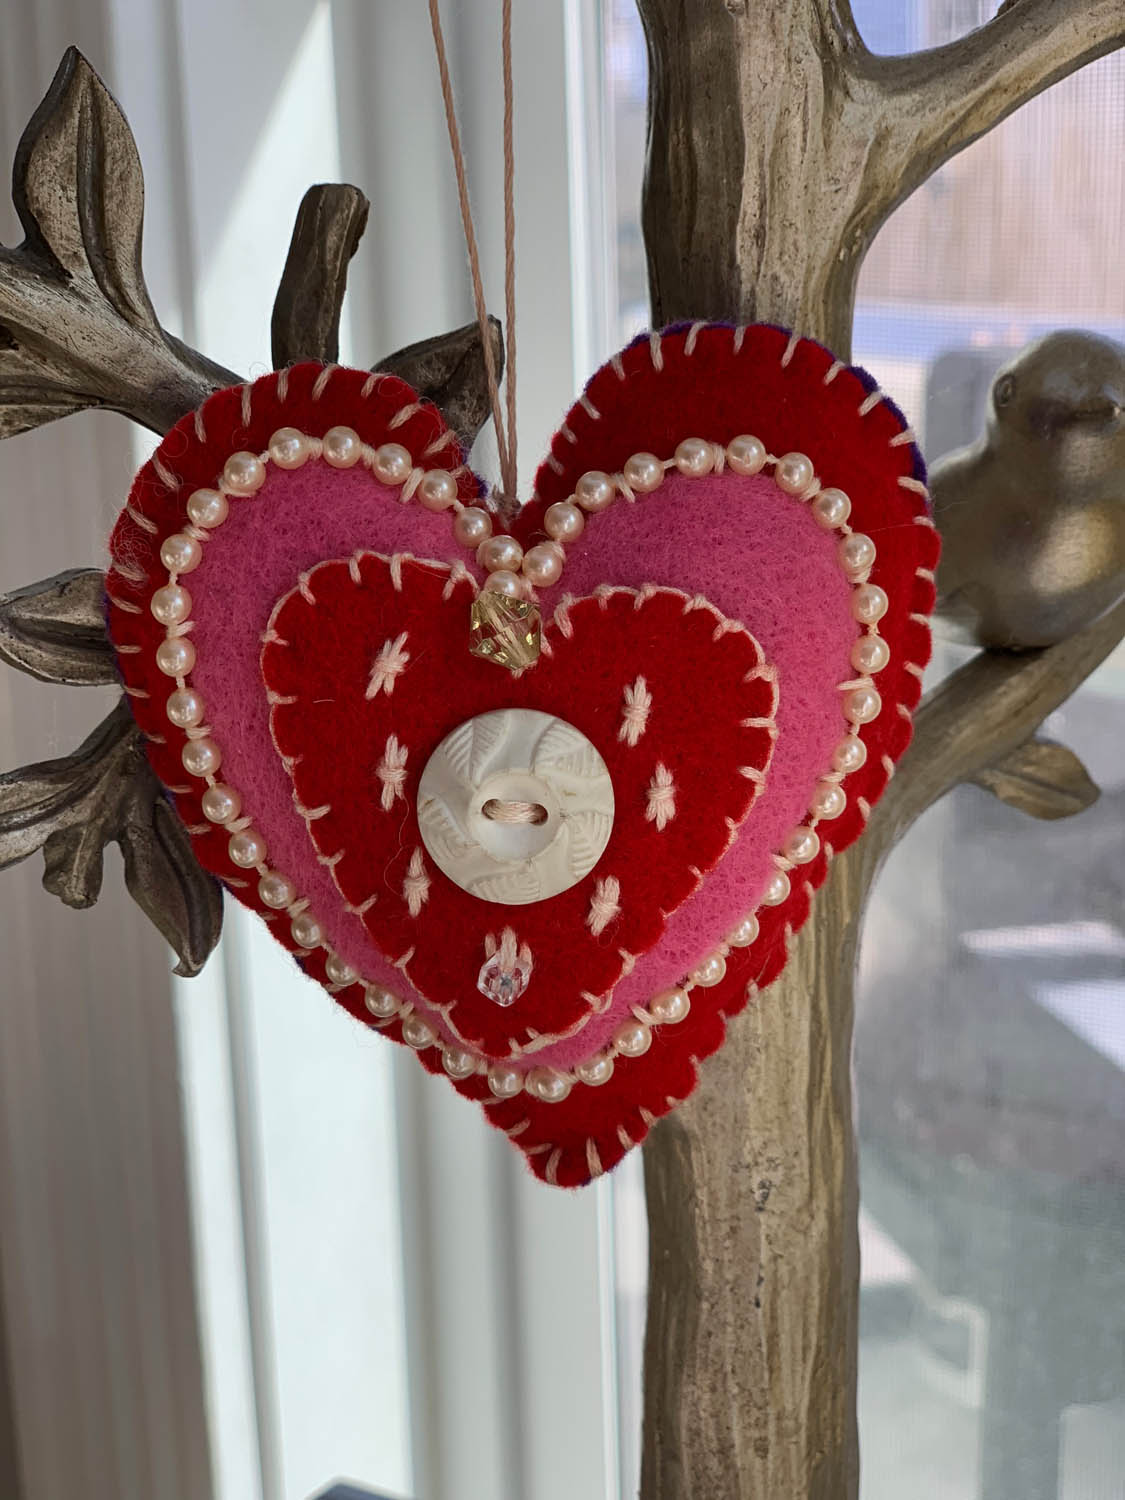 Handmade valentine heart ornament in red and pink felt with bead trim and embroidery